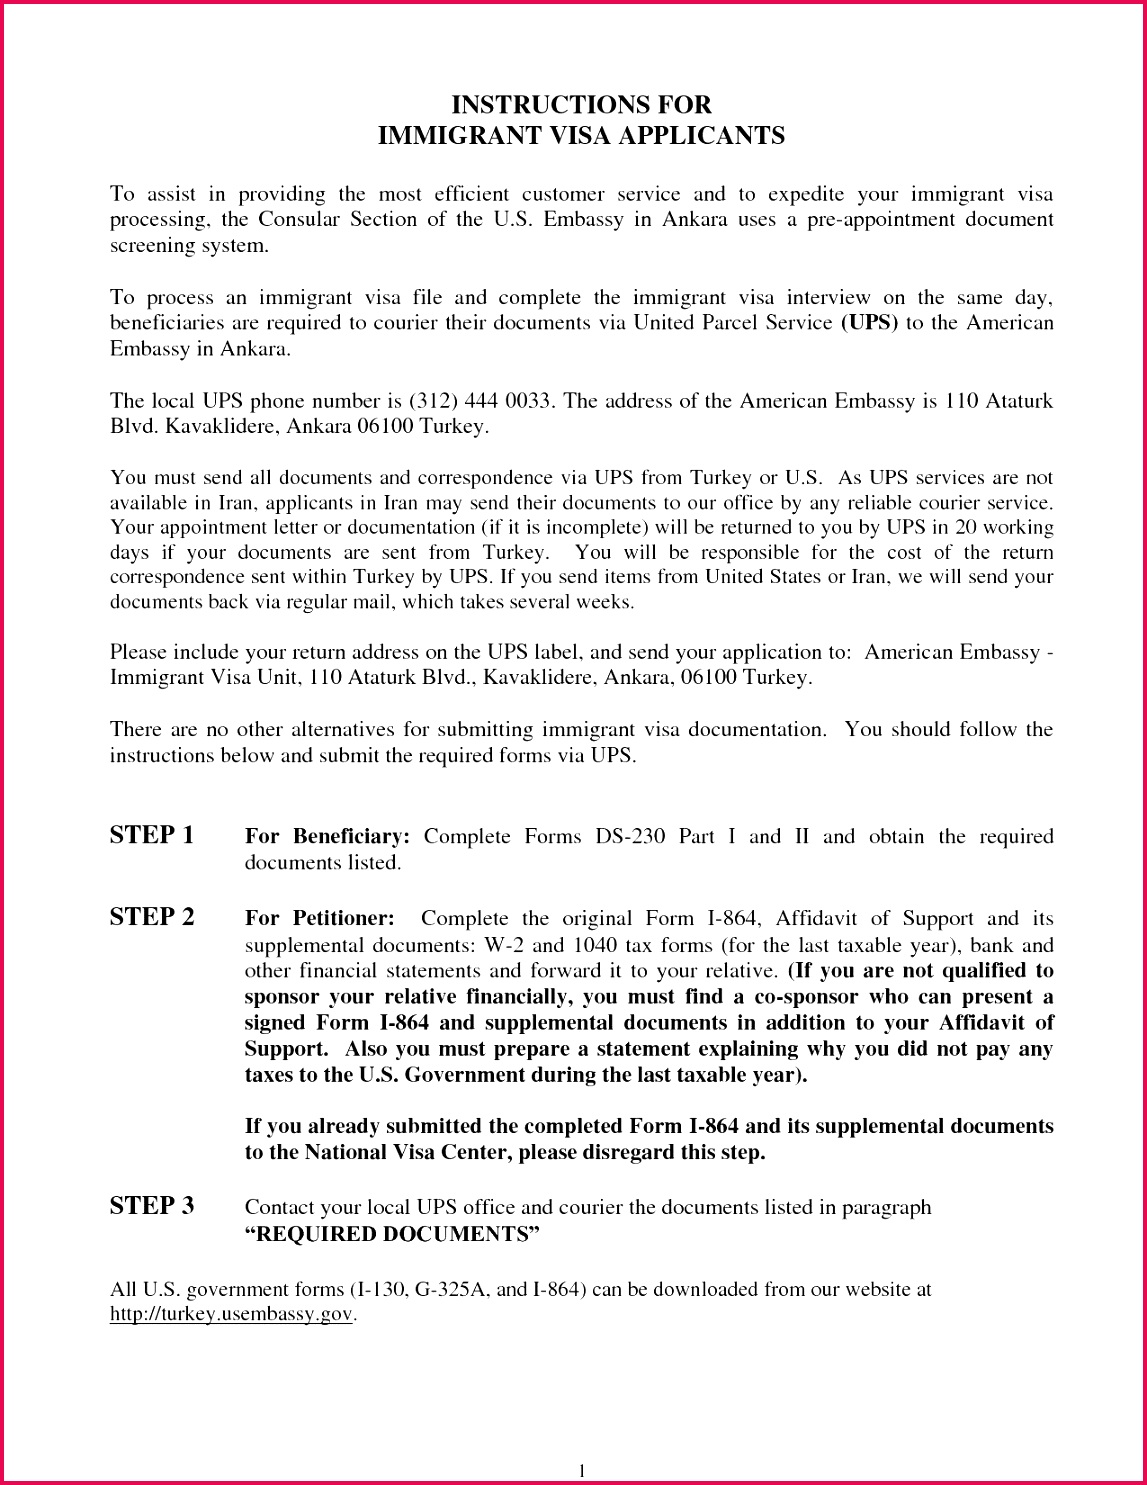 mexican marriage certificate translation template pdf and birth certificate translation form pdf simple marriage certificate of mexican marriage certificate translation template pdf